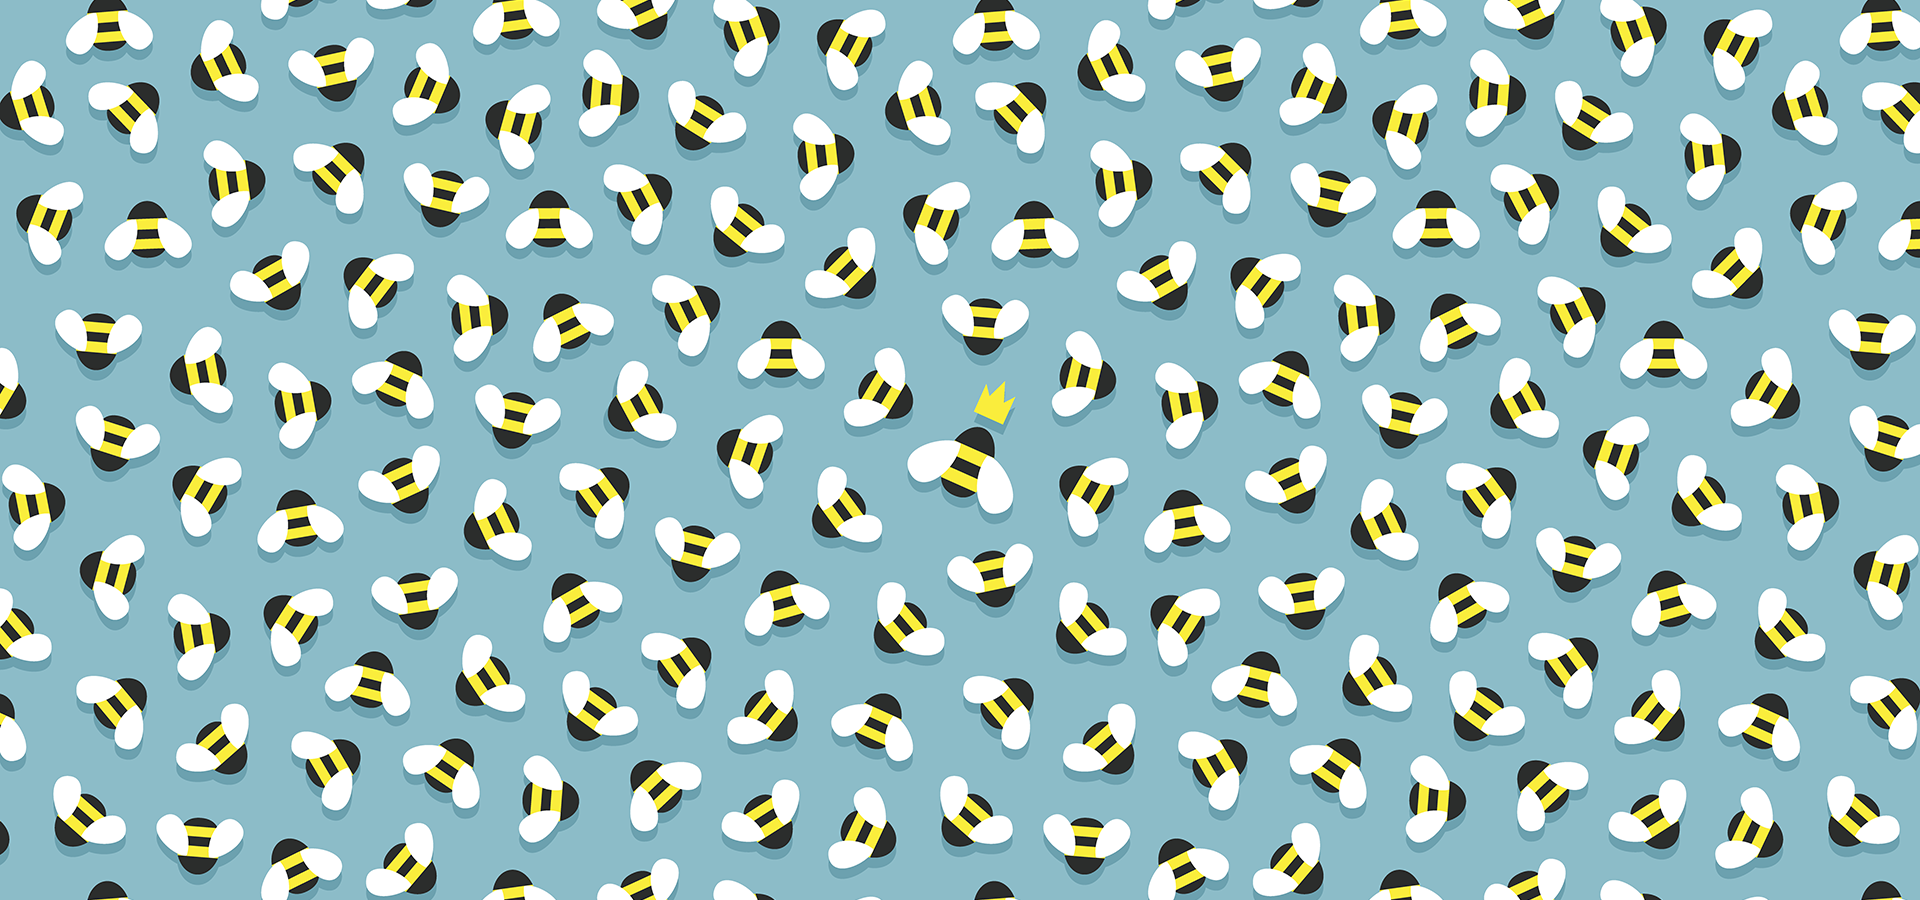 swarm bees queen pattern